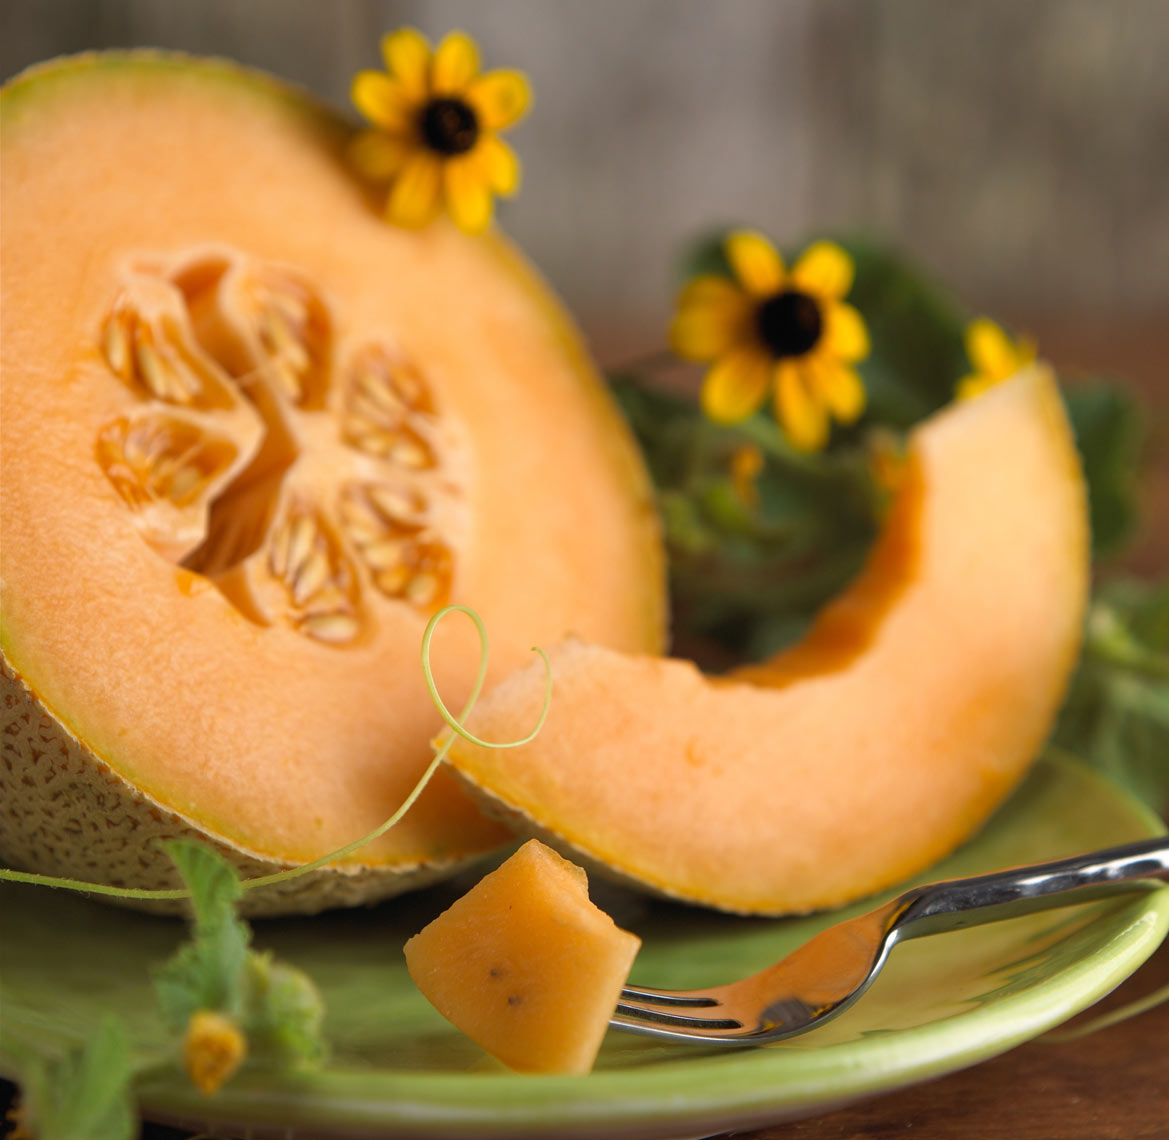 Cantaloupe on a green plate with black eyed Susan's. Food photography, InsideOut Studios.